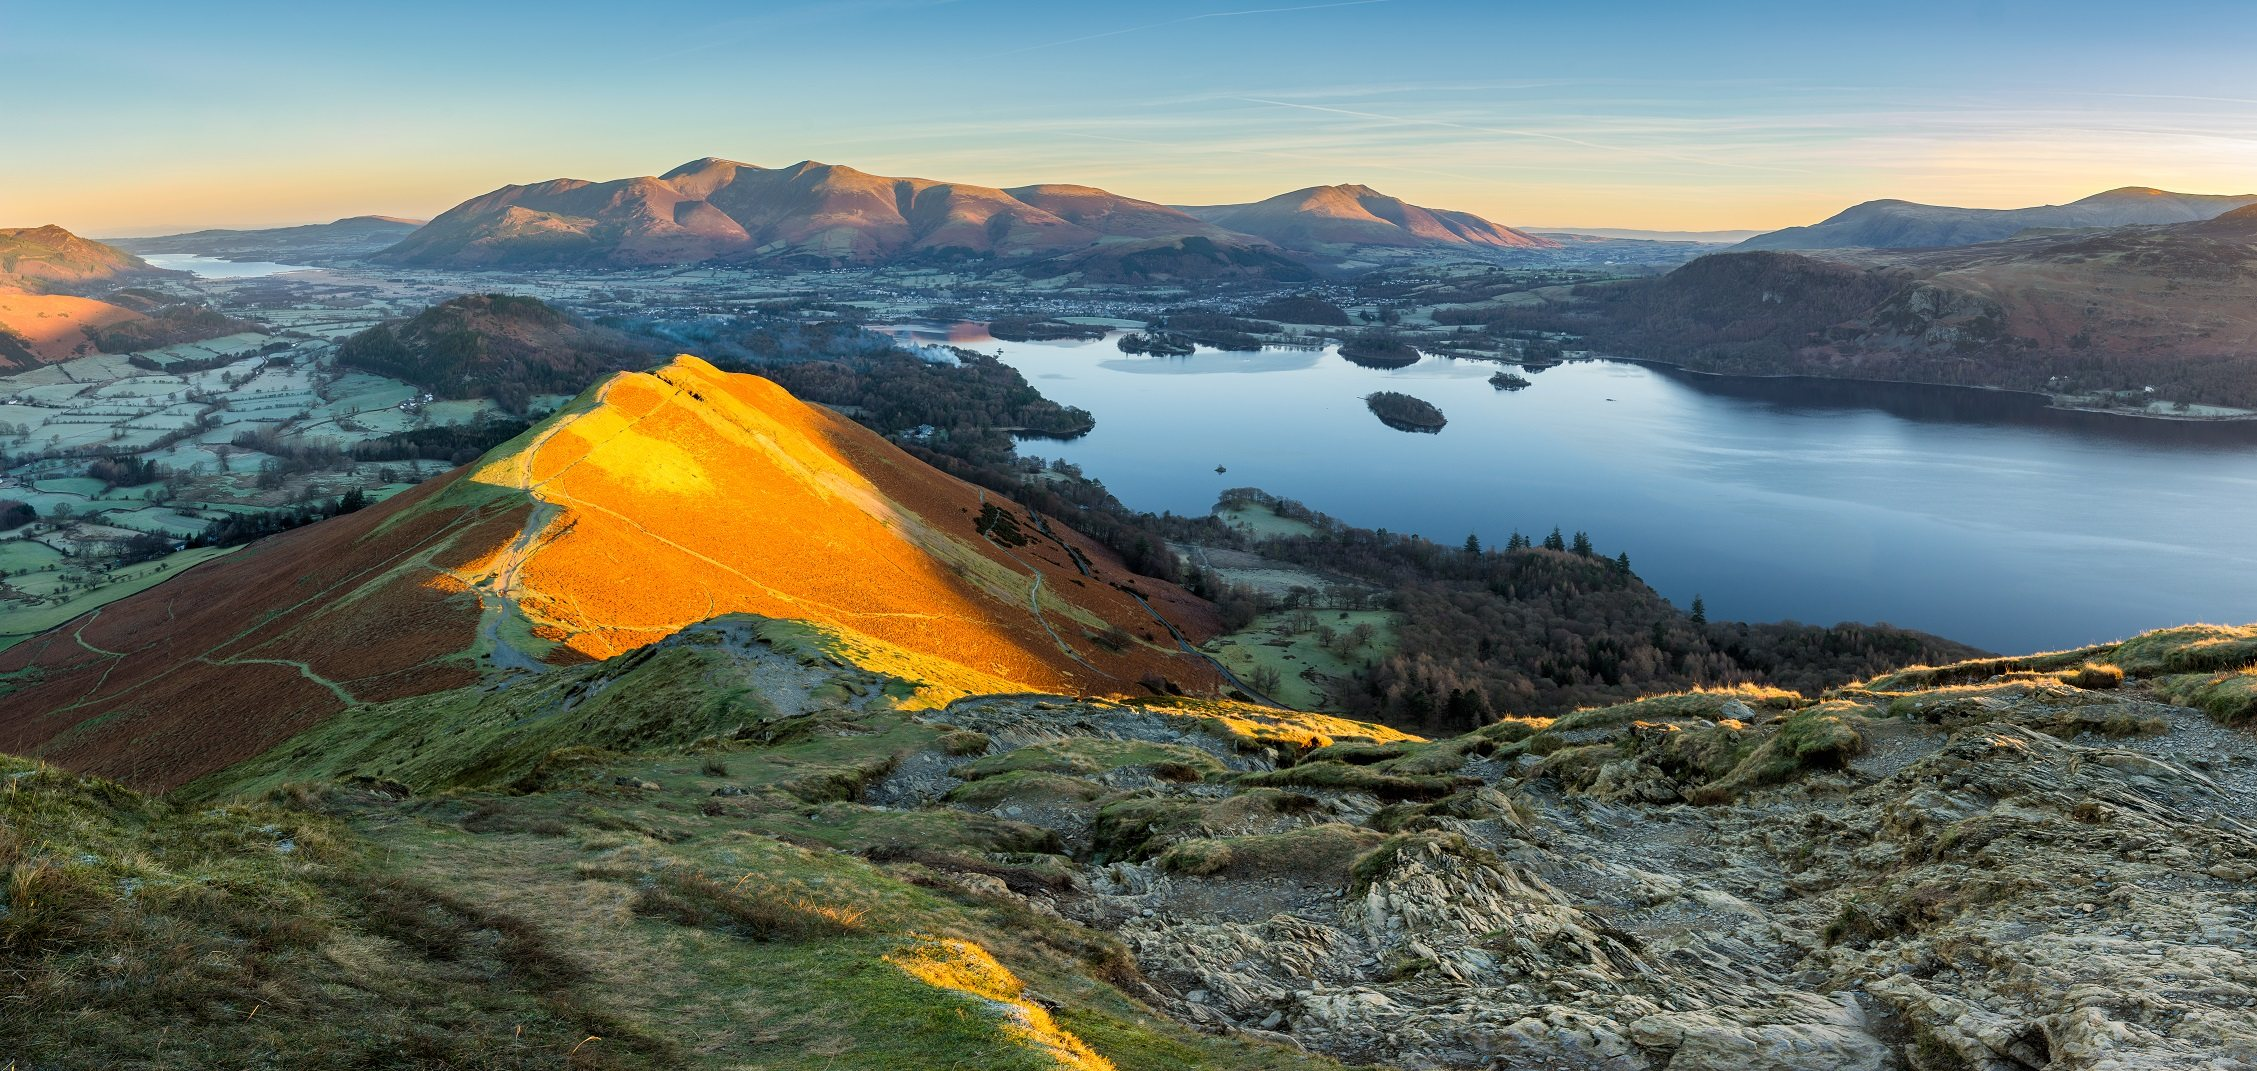 Stunning image of Catbells and Derwent Water